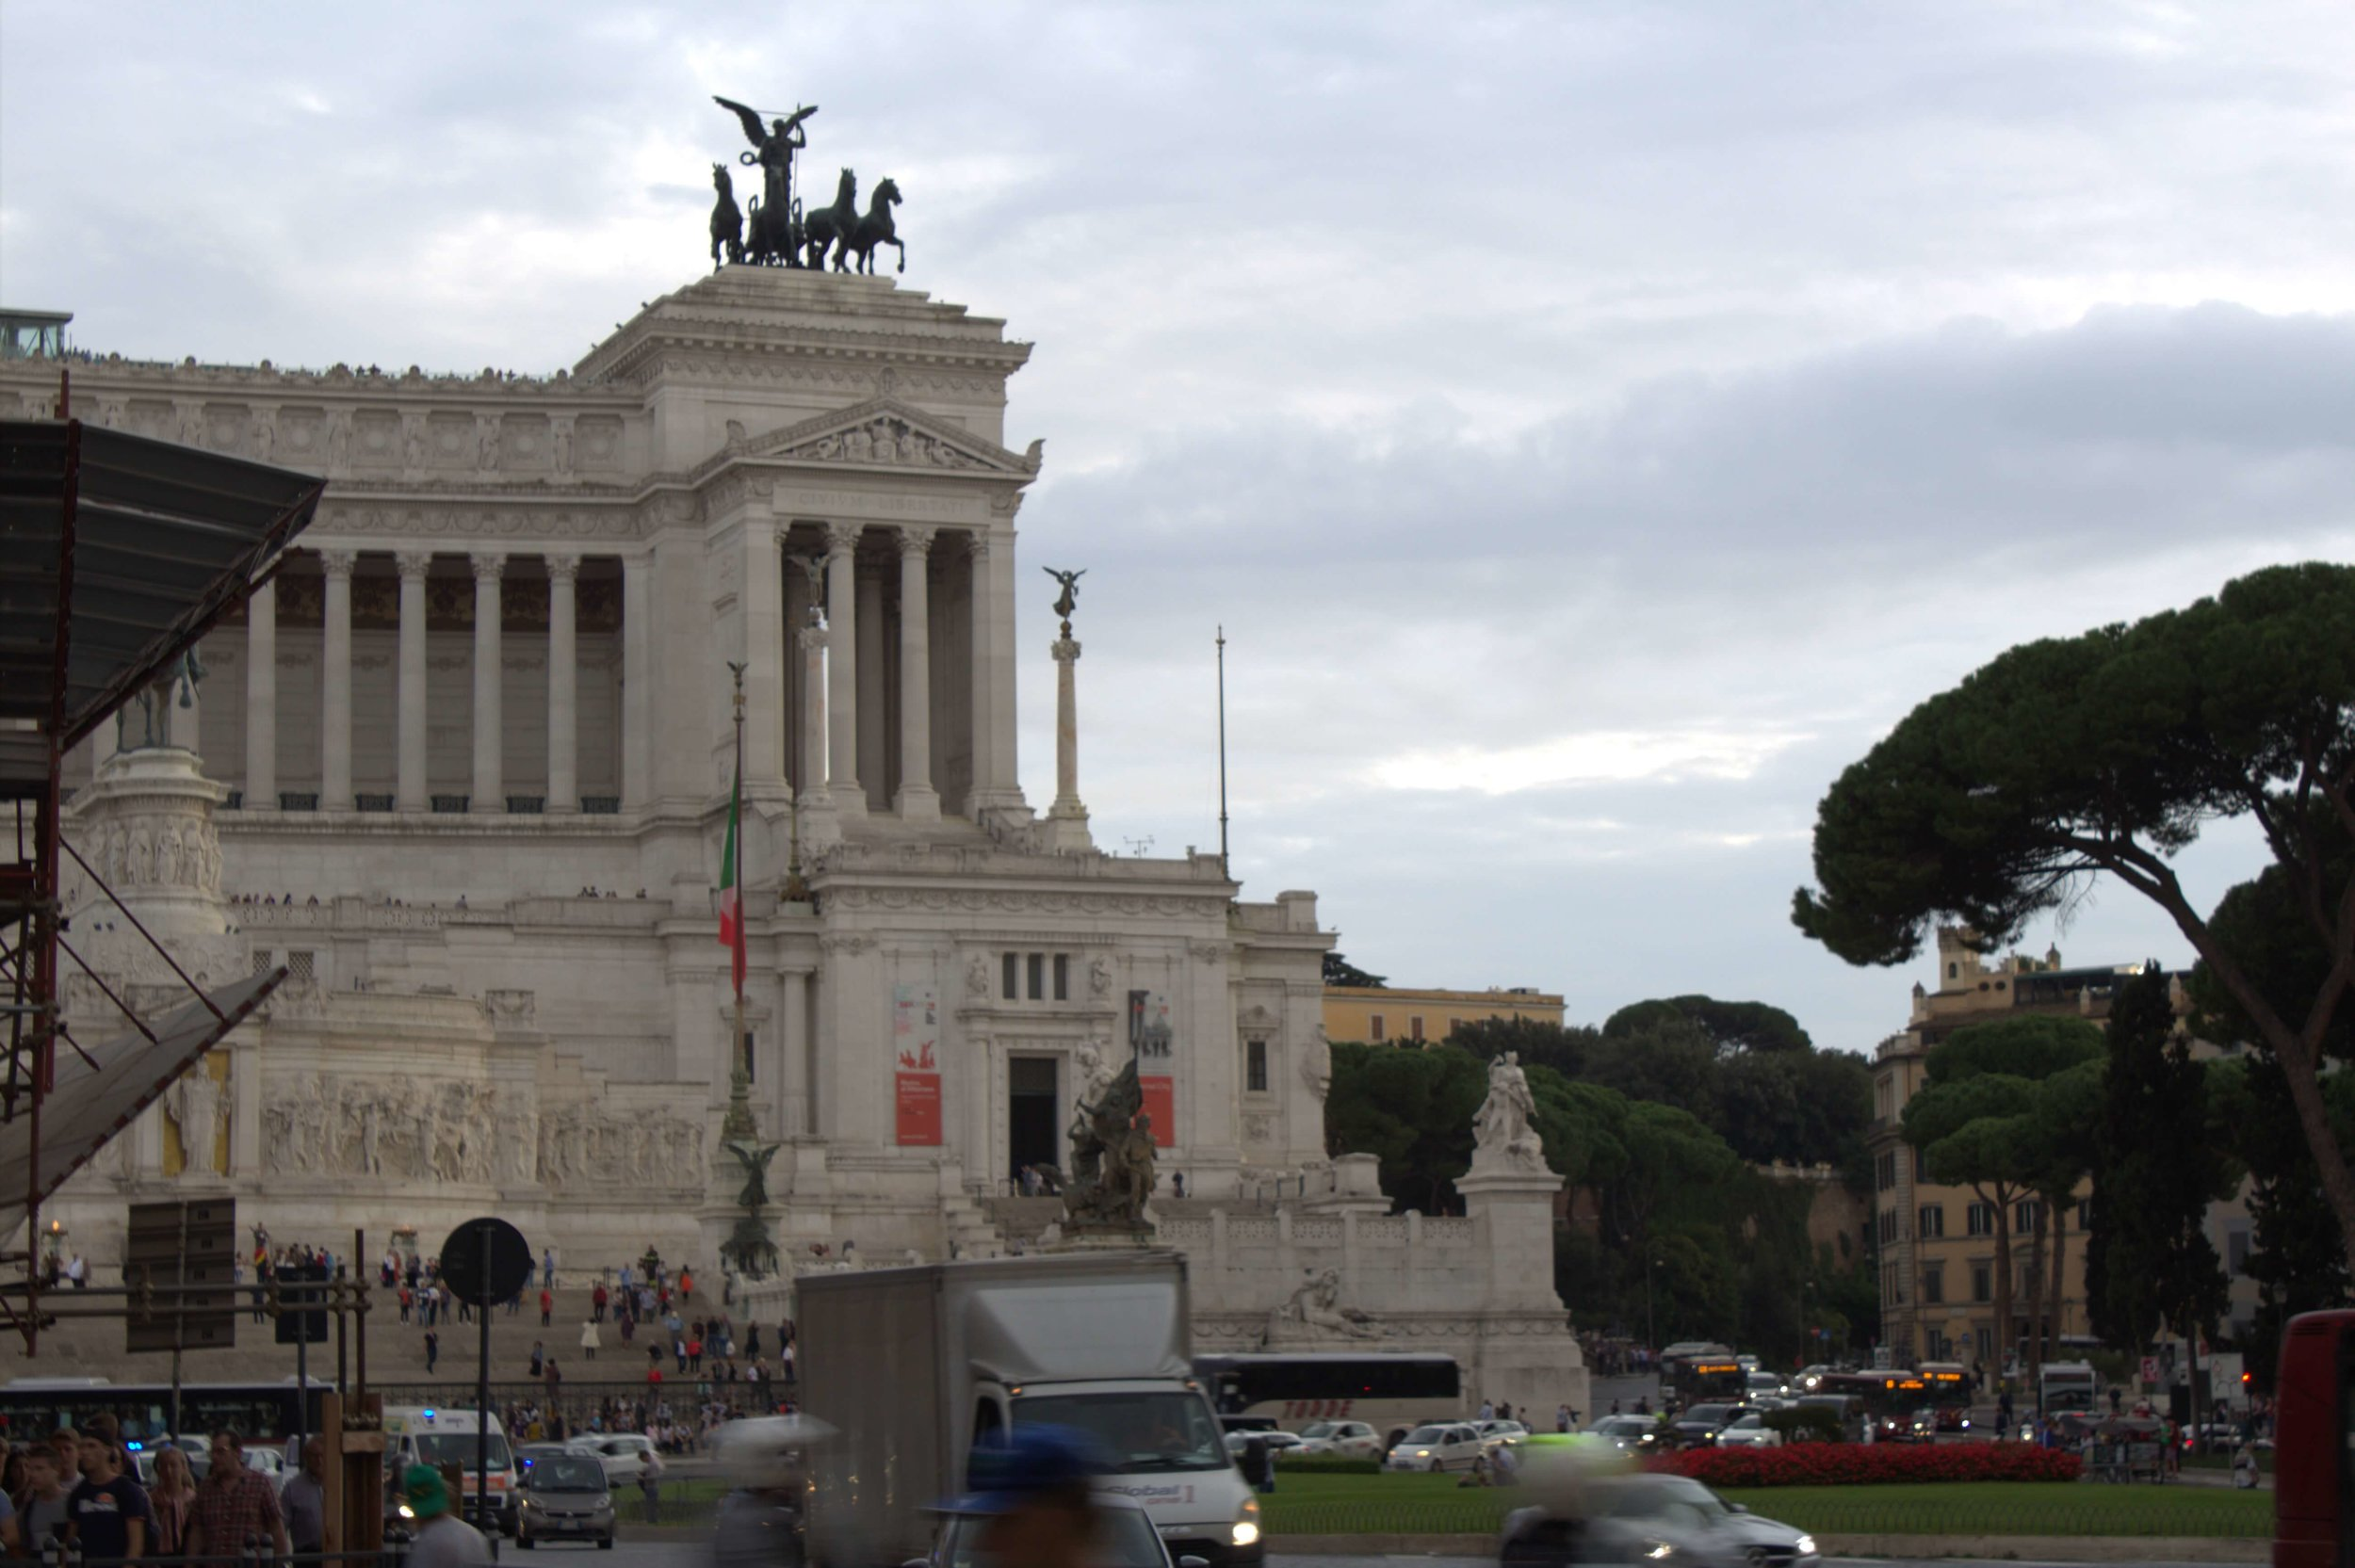 The Monument of the Fatherland is a pretty remarkable structure, although one can't help but notice it proximity to where Italian Fascist leader Mussolini gave harrowing speeches.